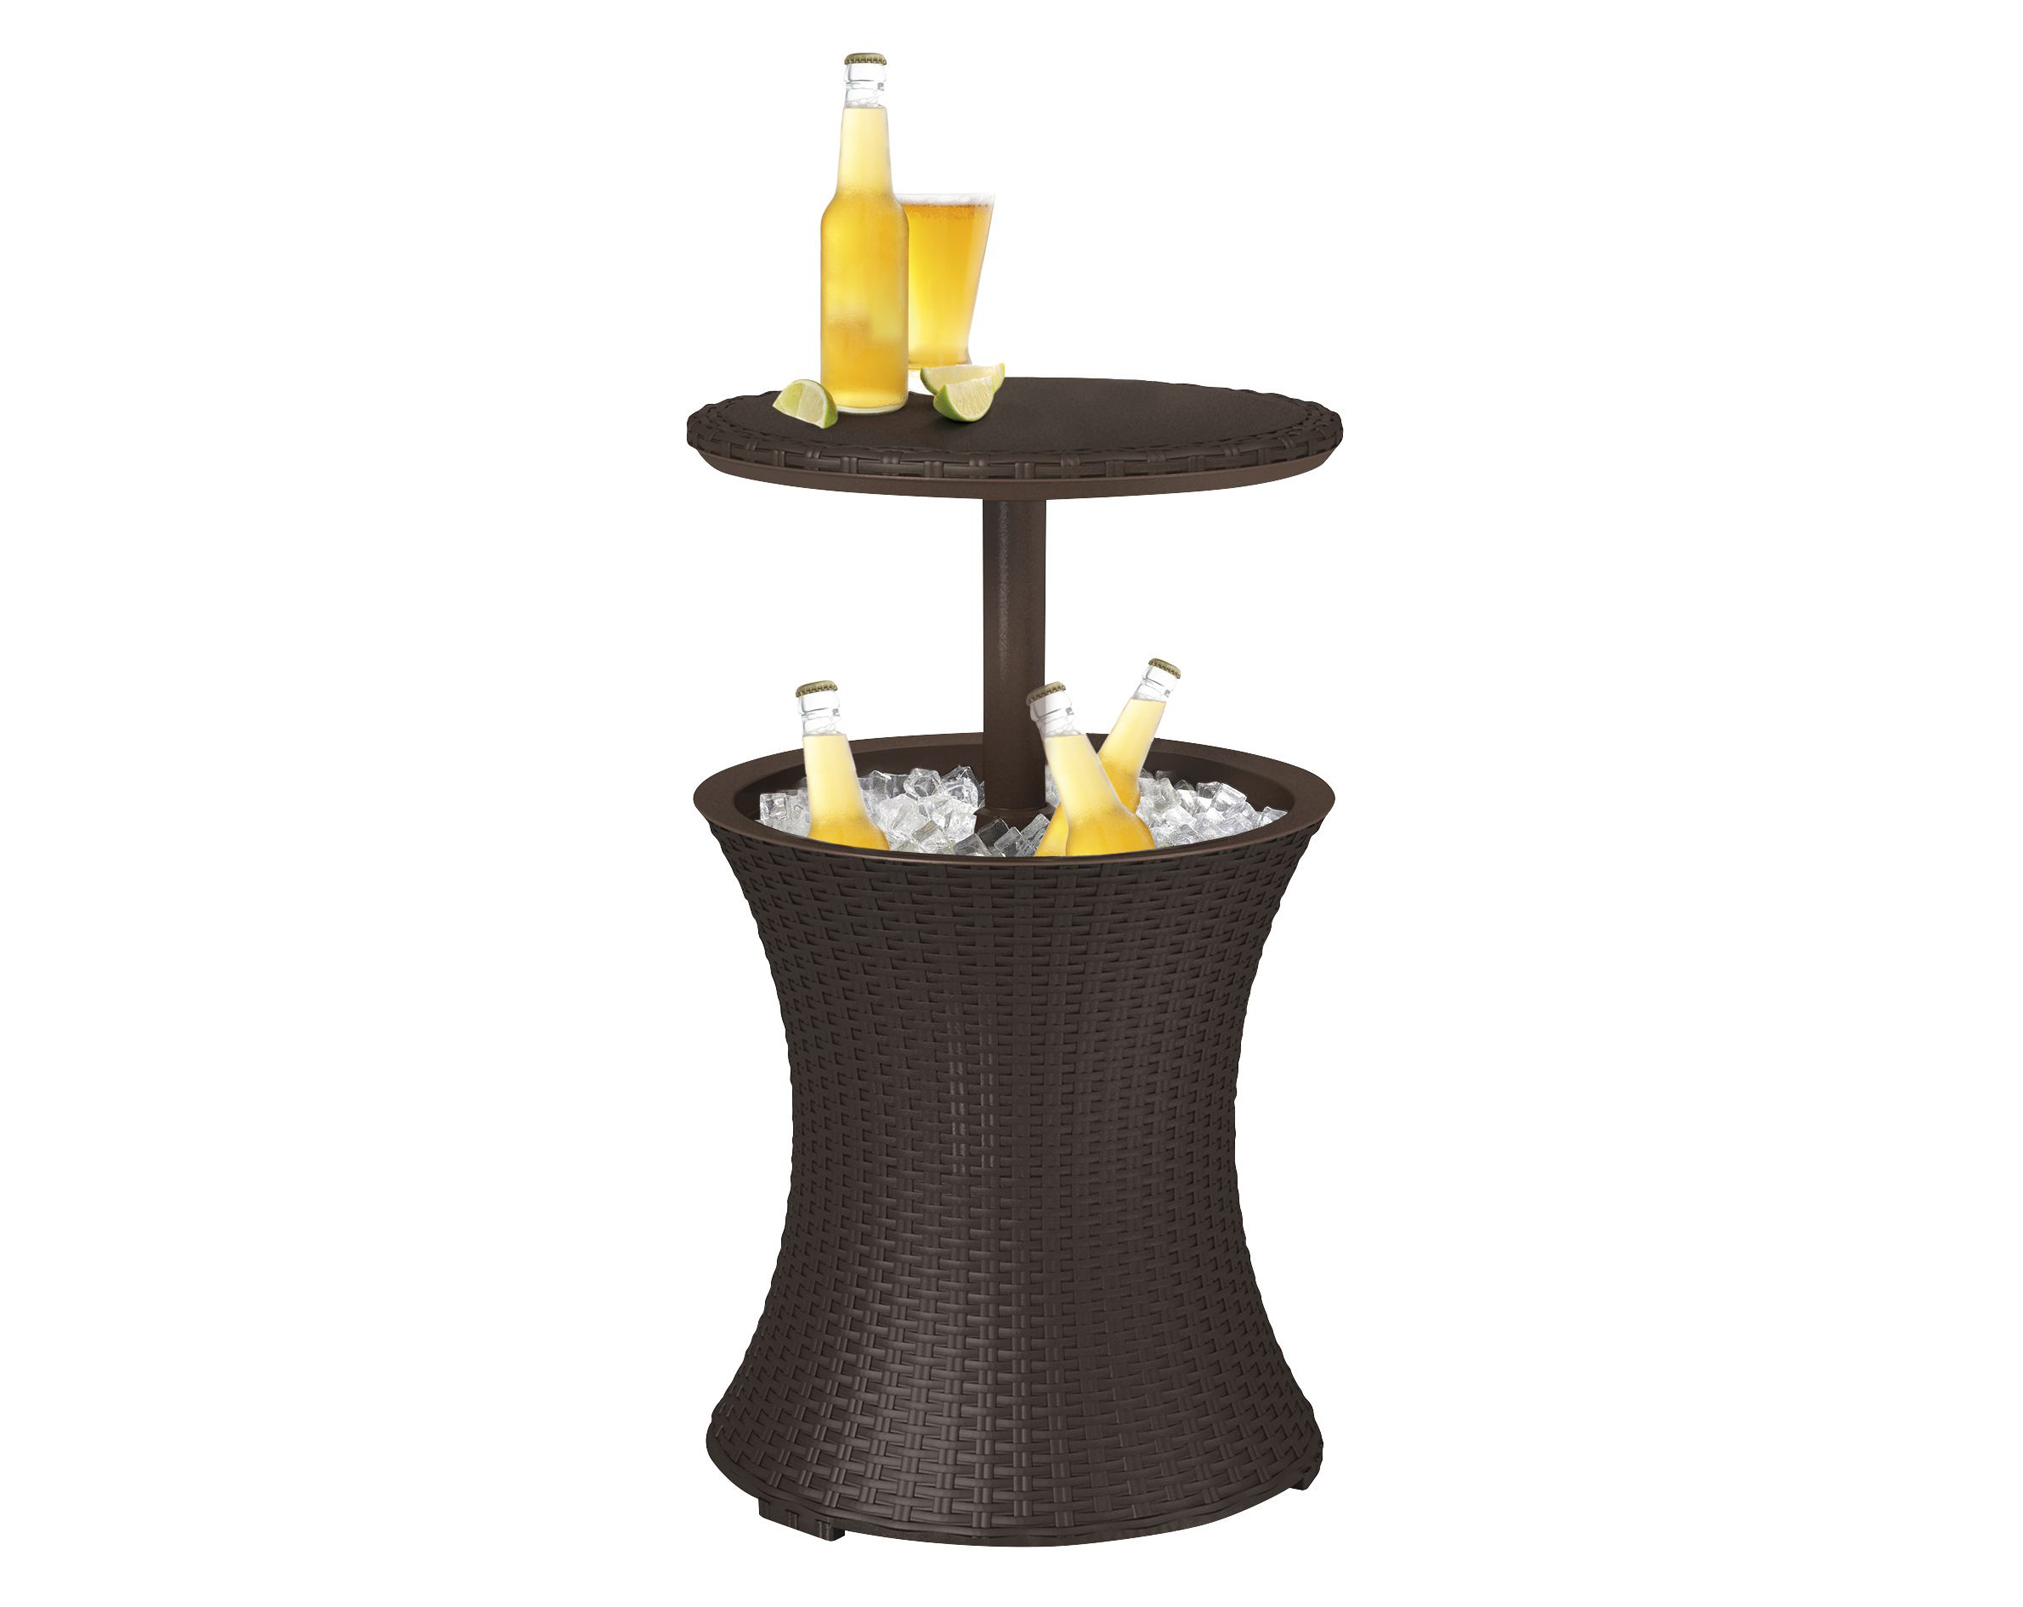 Rattan style Keter Cool Bar, Morrisons